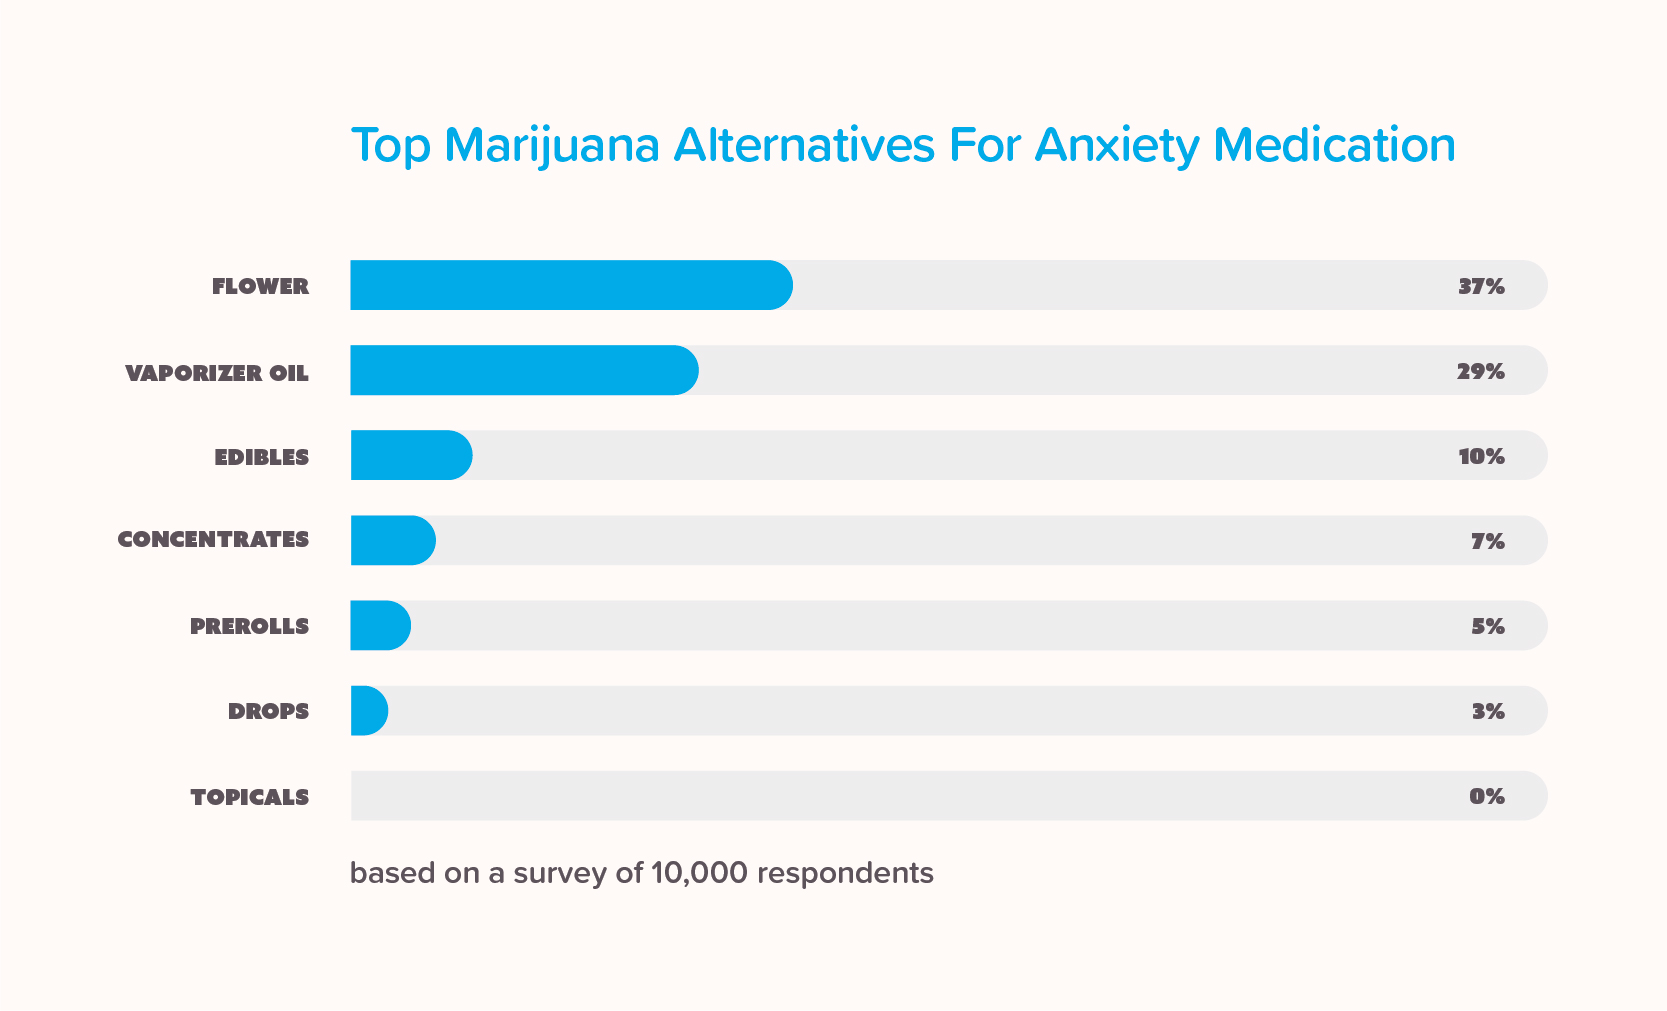 Infographic showing the top marijuana alternatives for anxiety medication